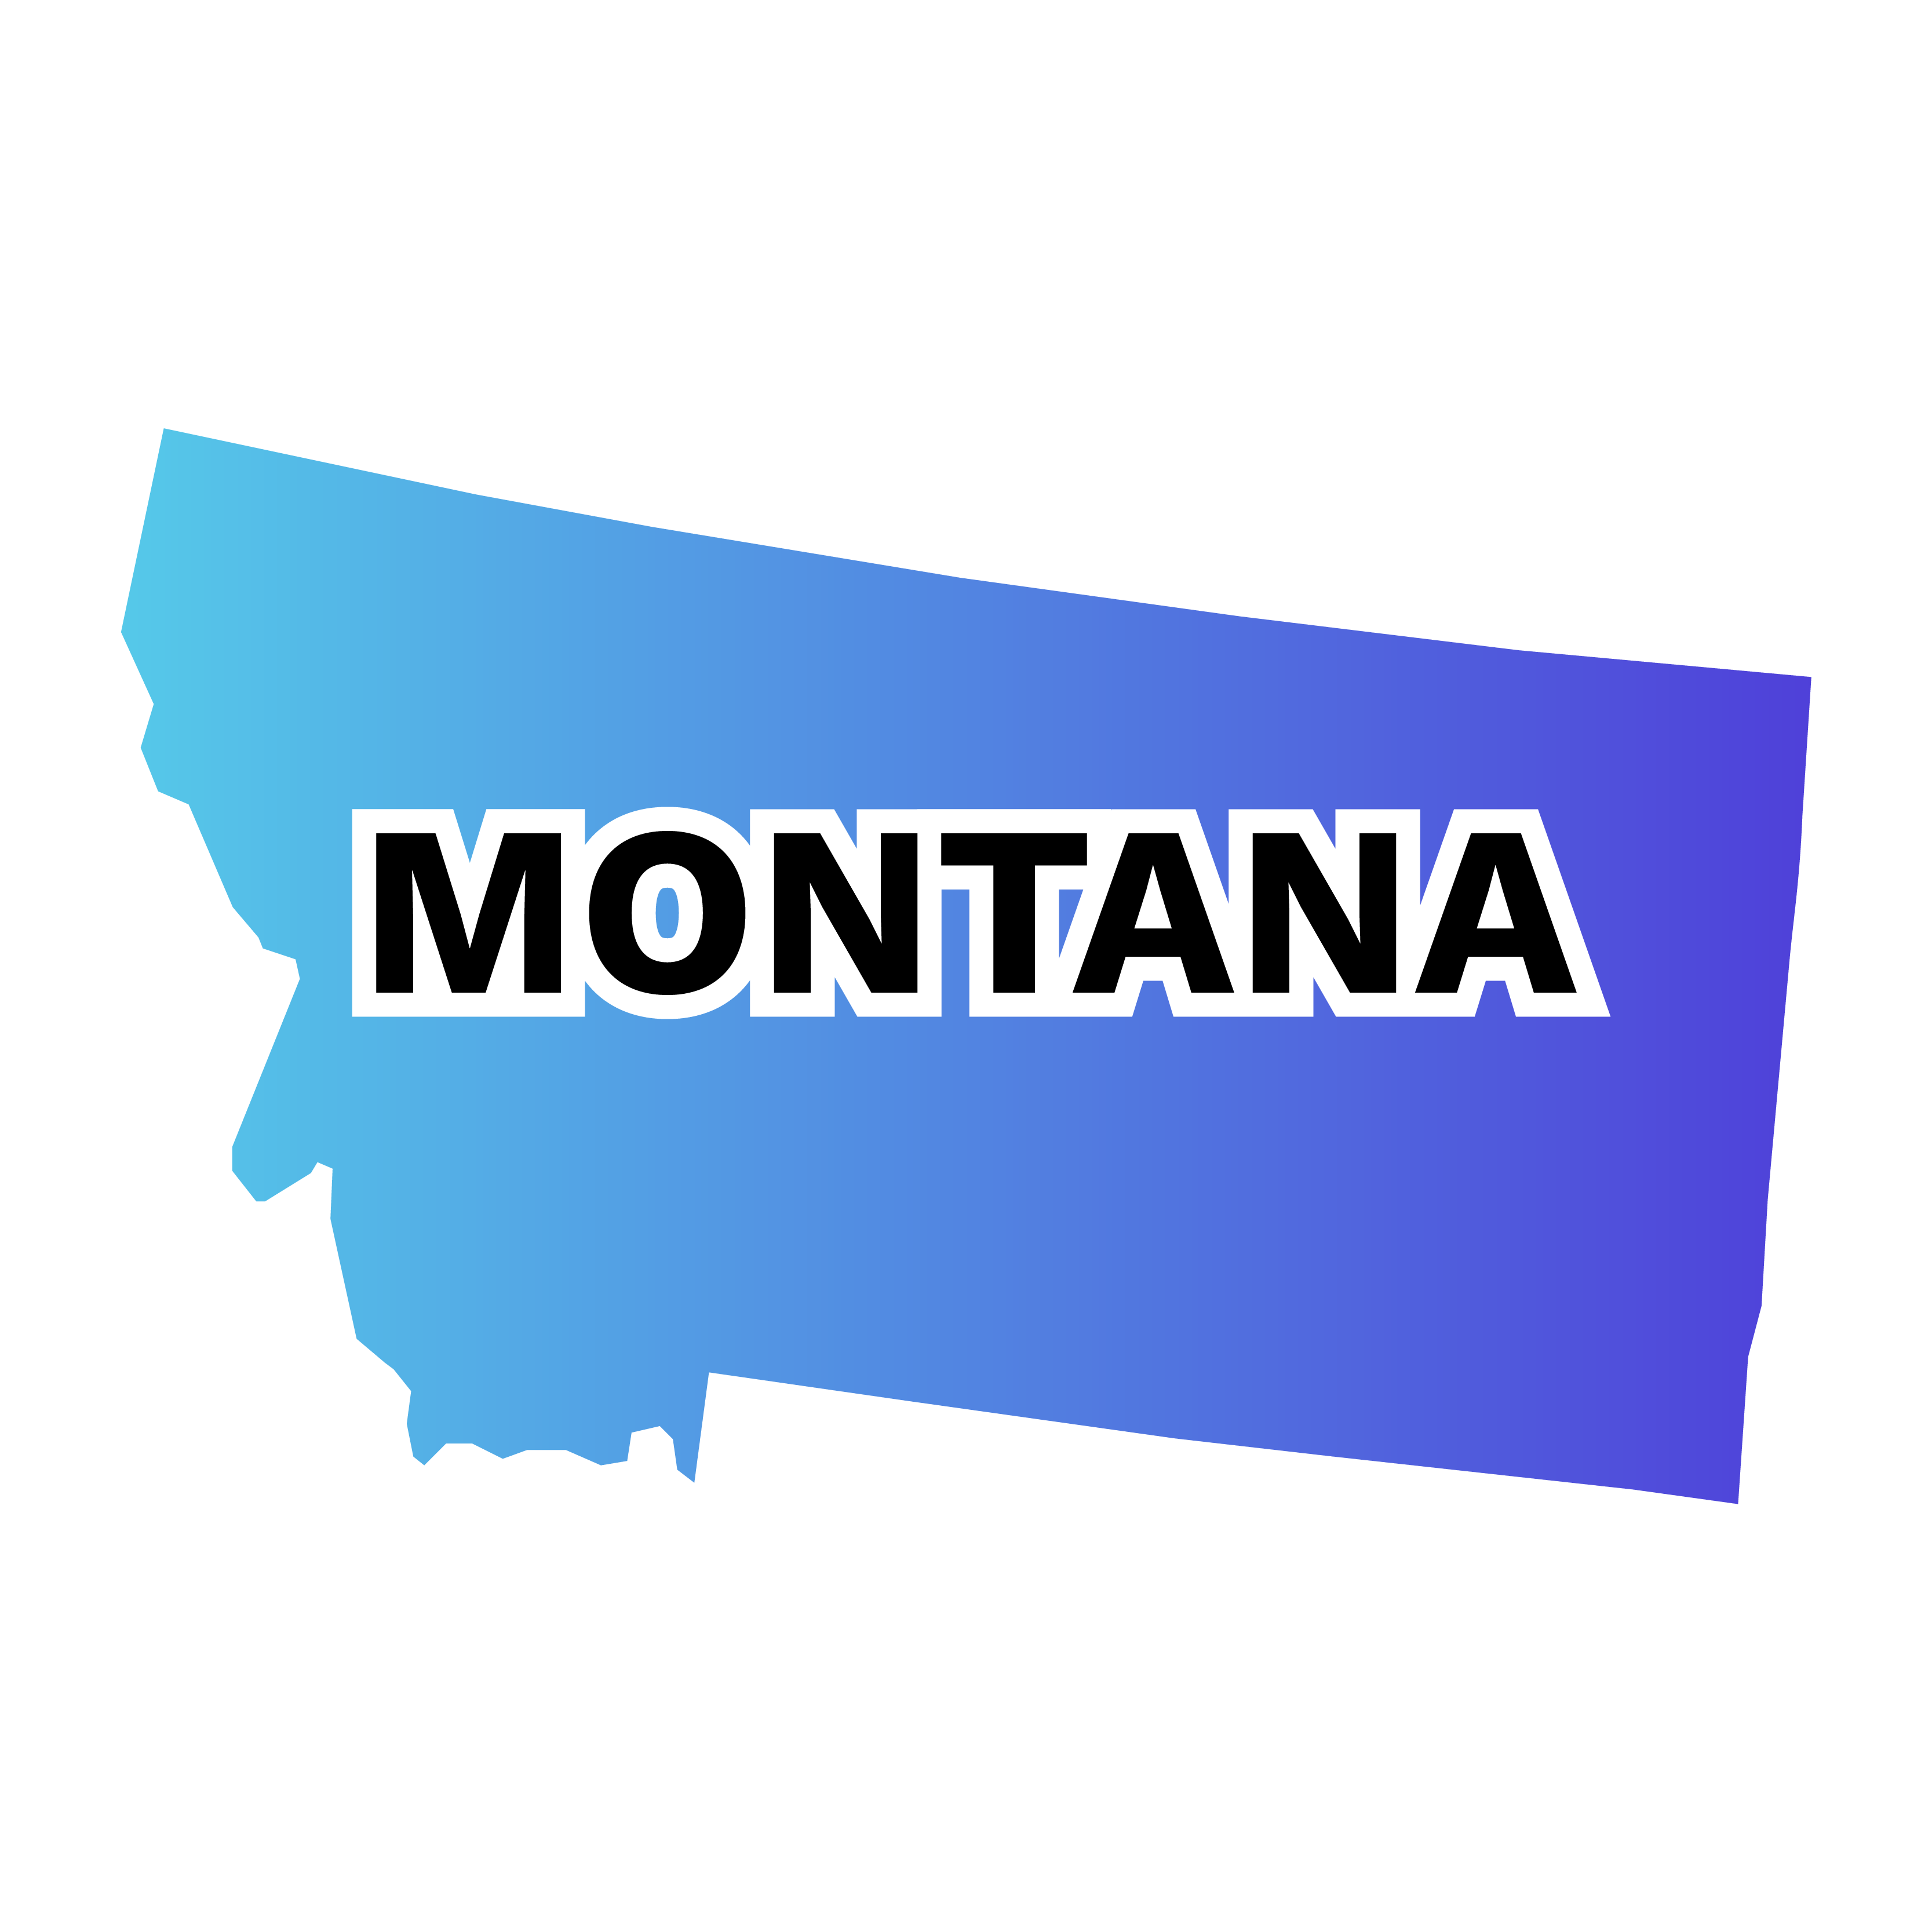 Montana CPA Exam & License Requirements